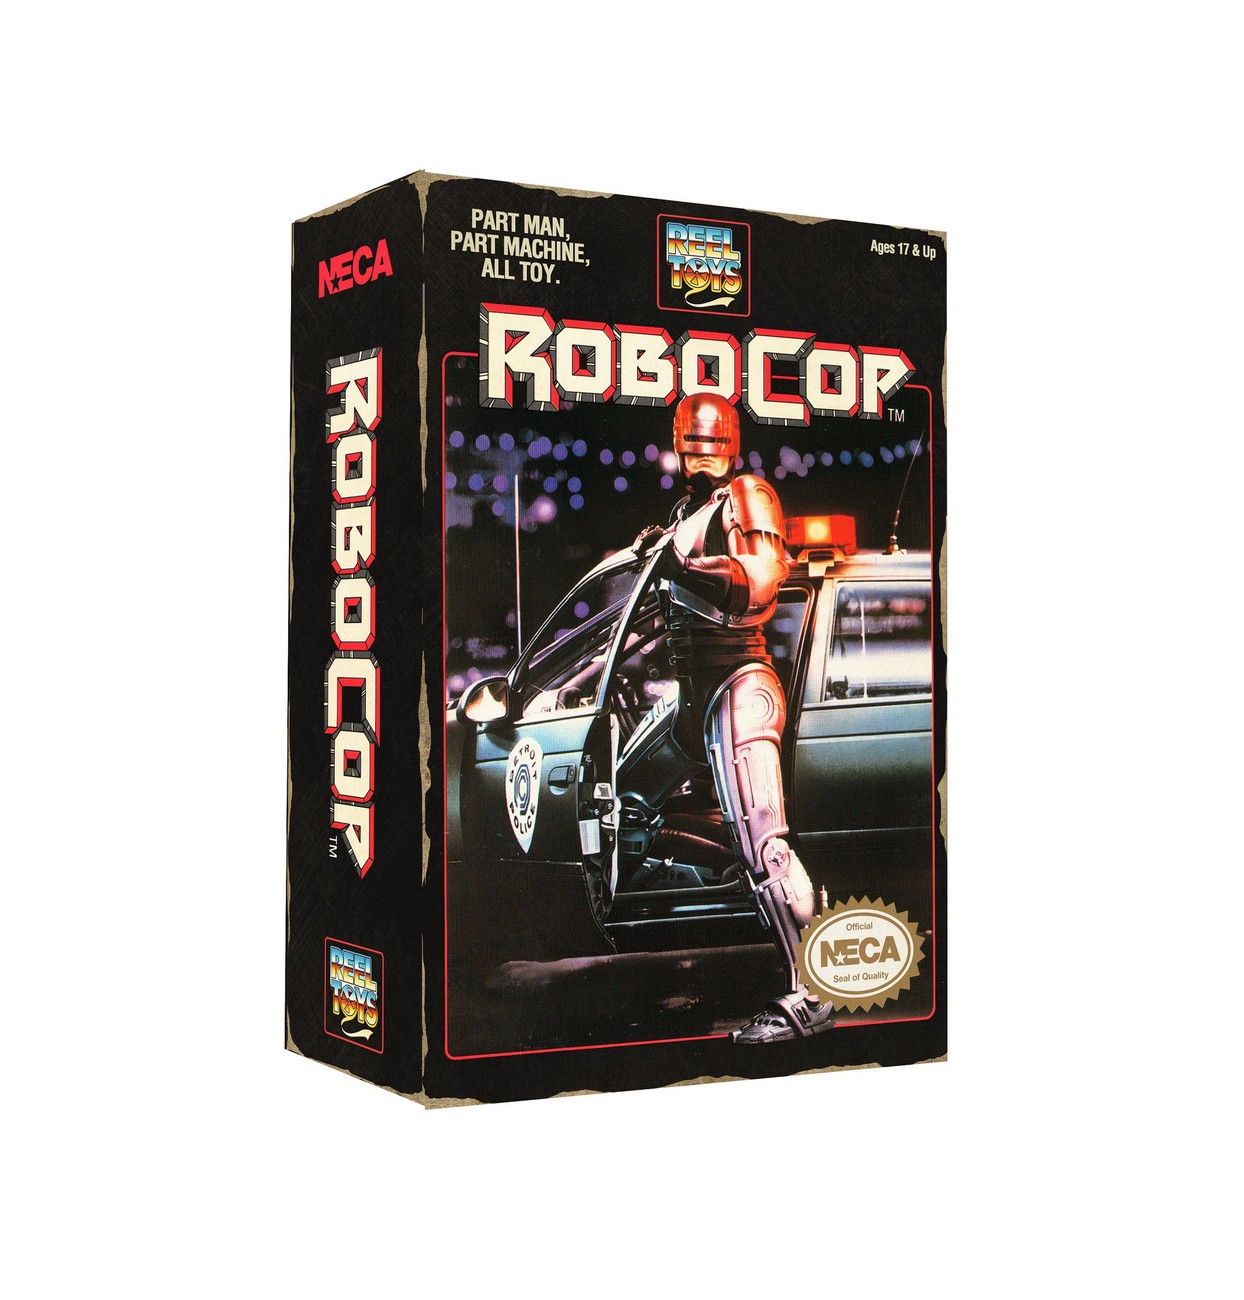 first look: classic video game appearance robocop revealed